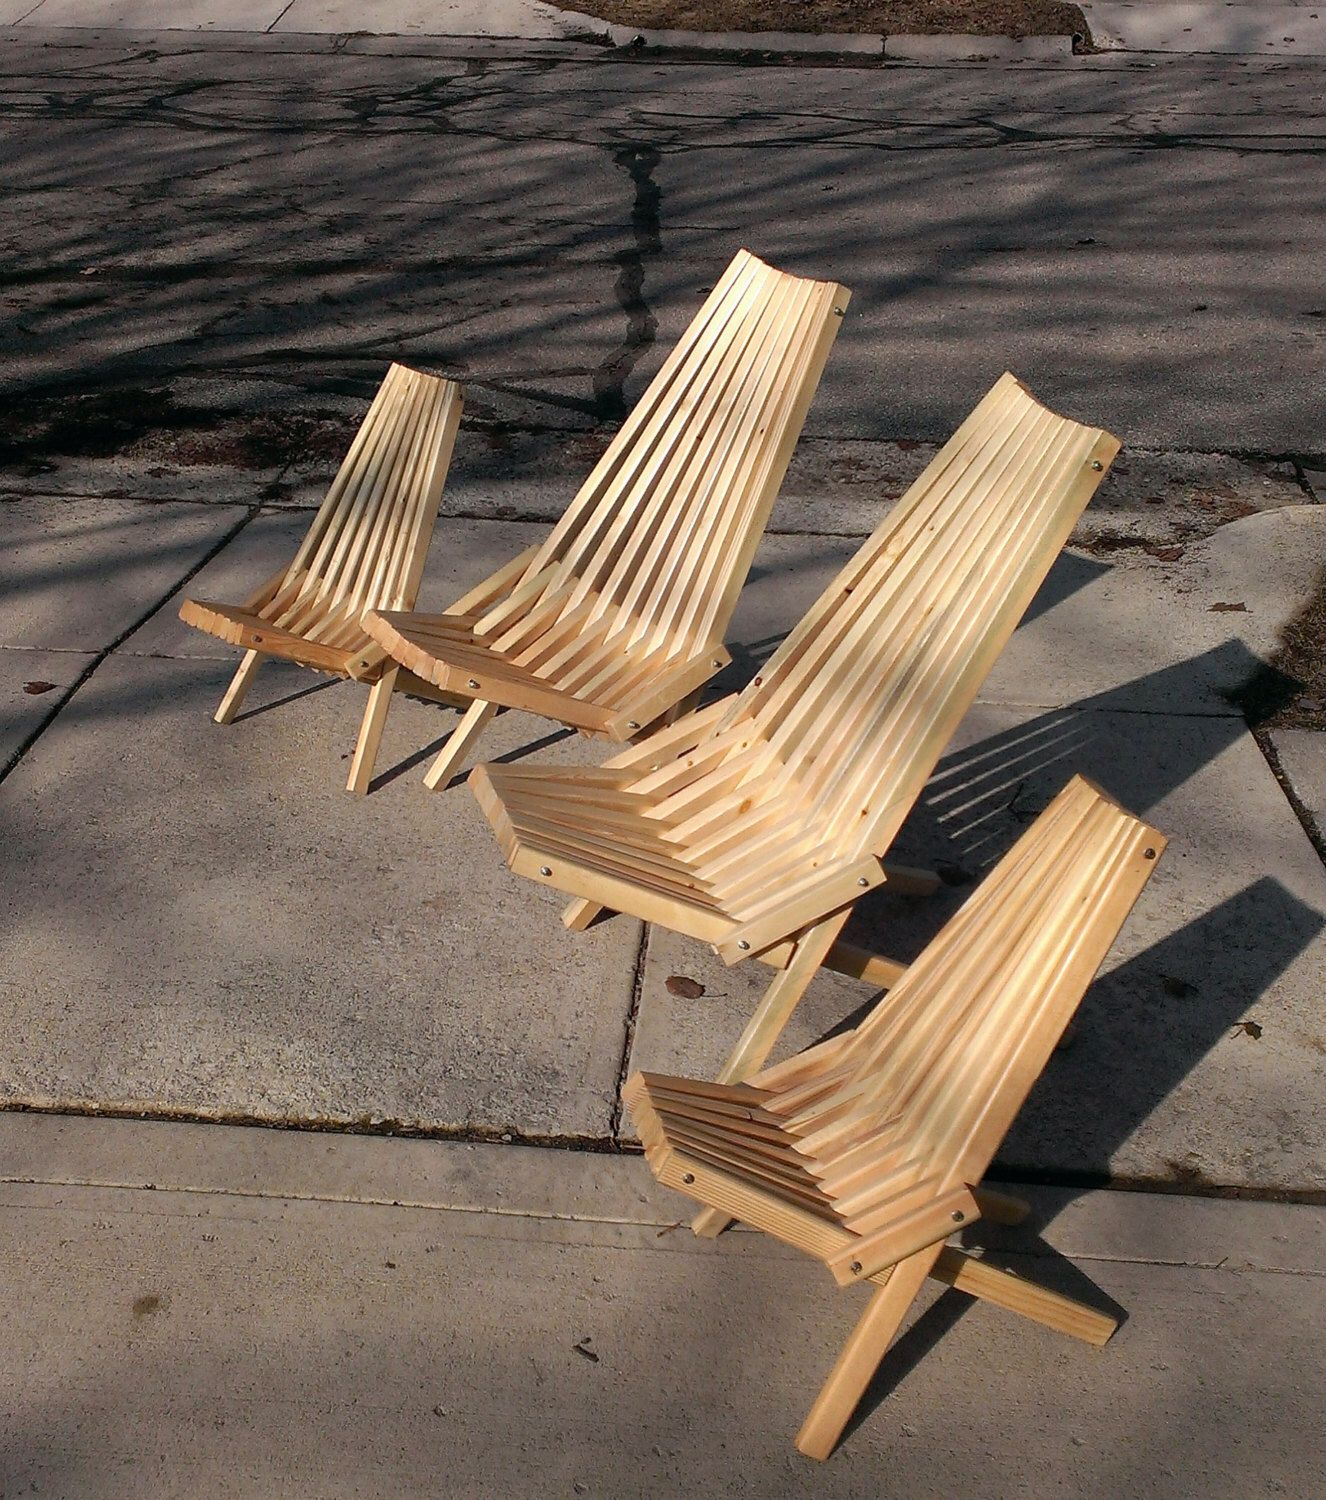 Outdoor Chairs With Style   Kentucky Stick Chairs   Free Shipping By  TheReclaimedPeddler On Etsy Https